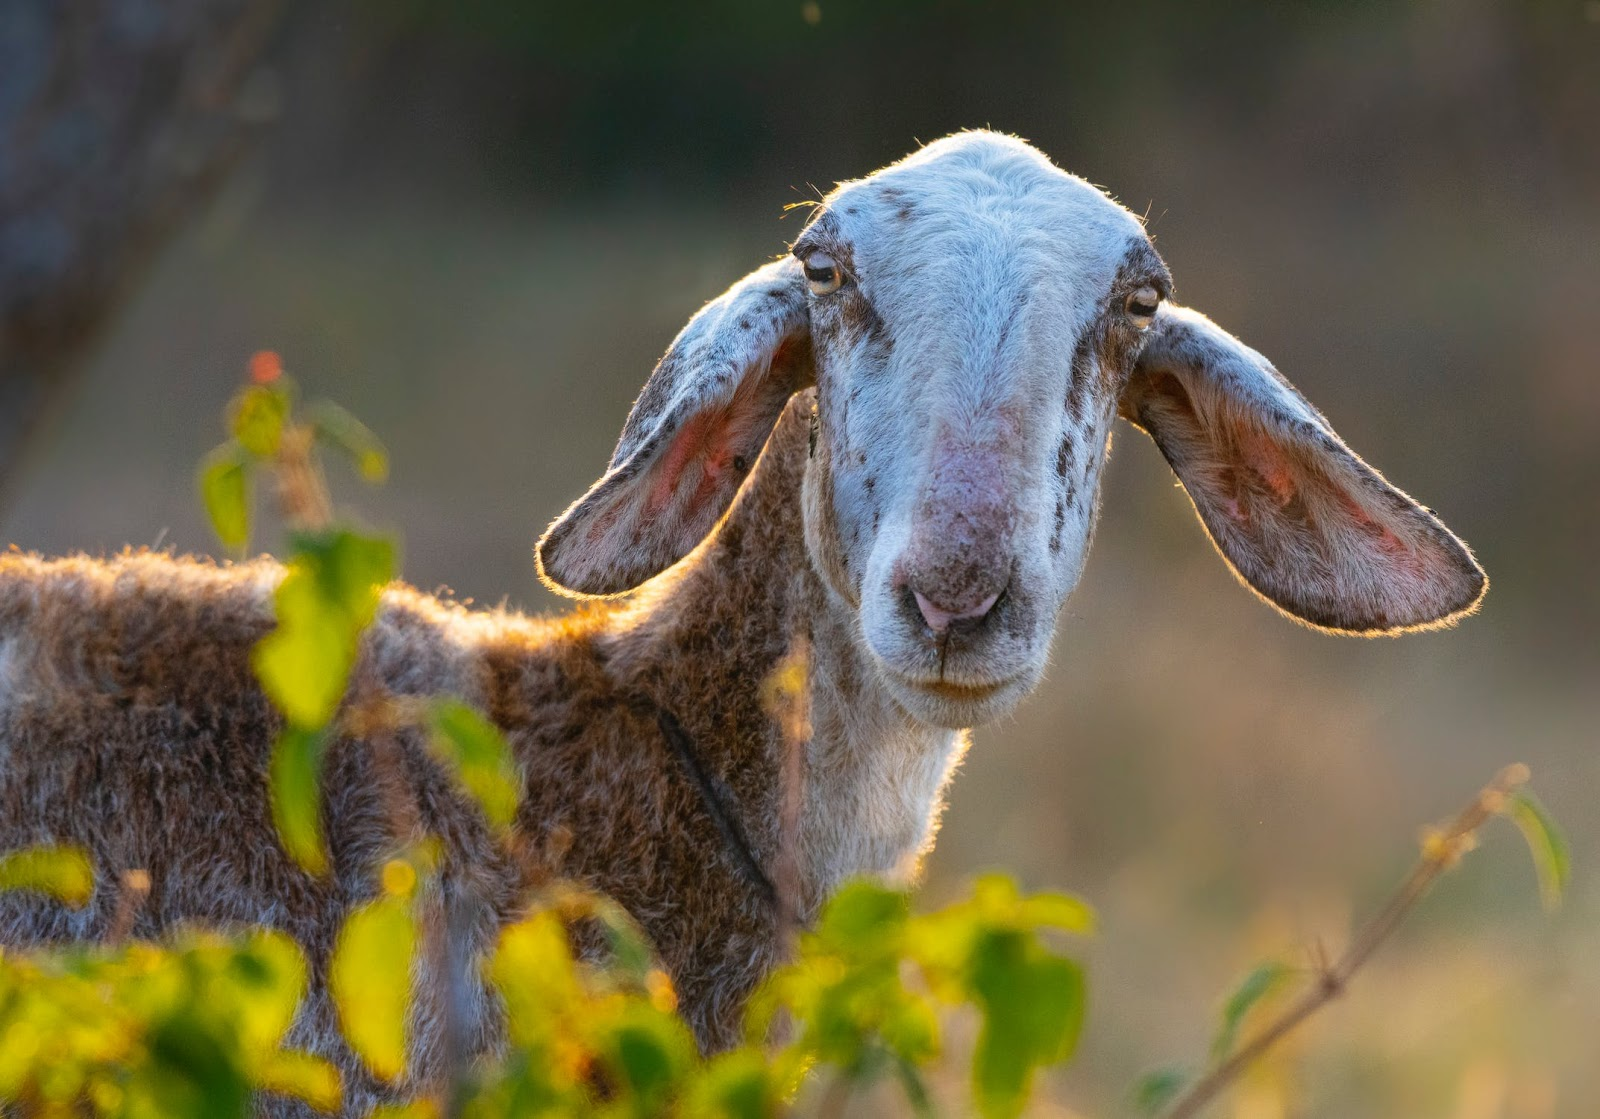 Coffee was discovered by a goat